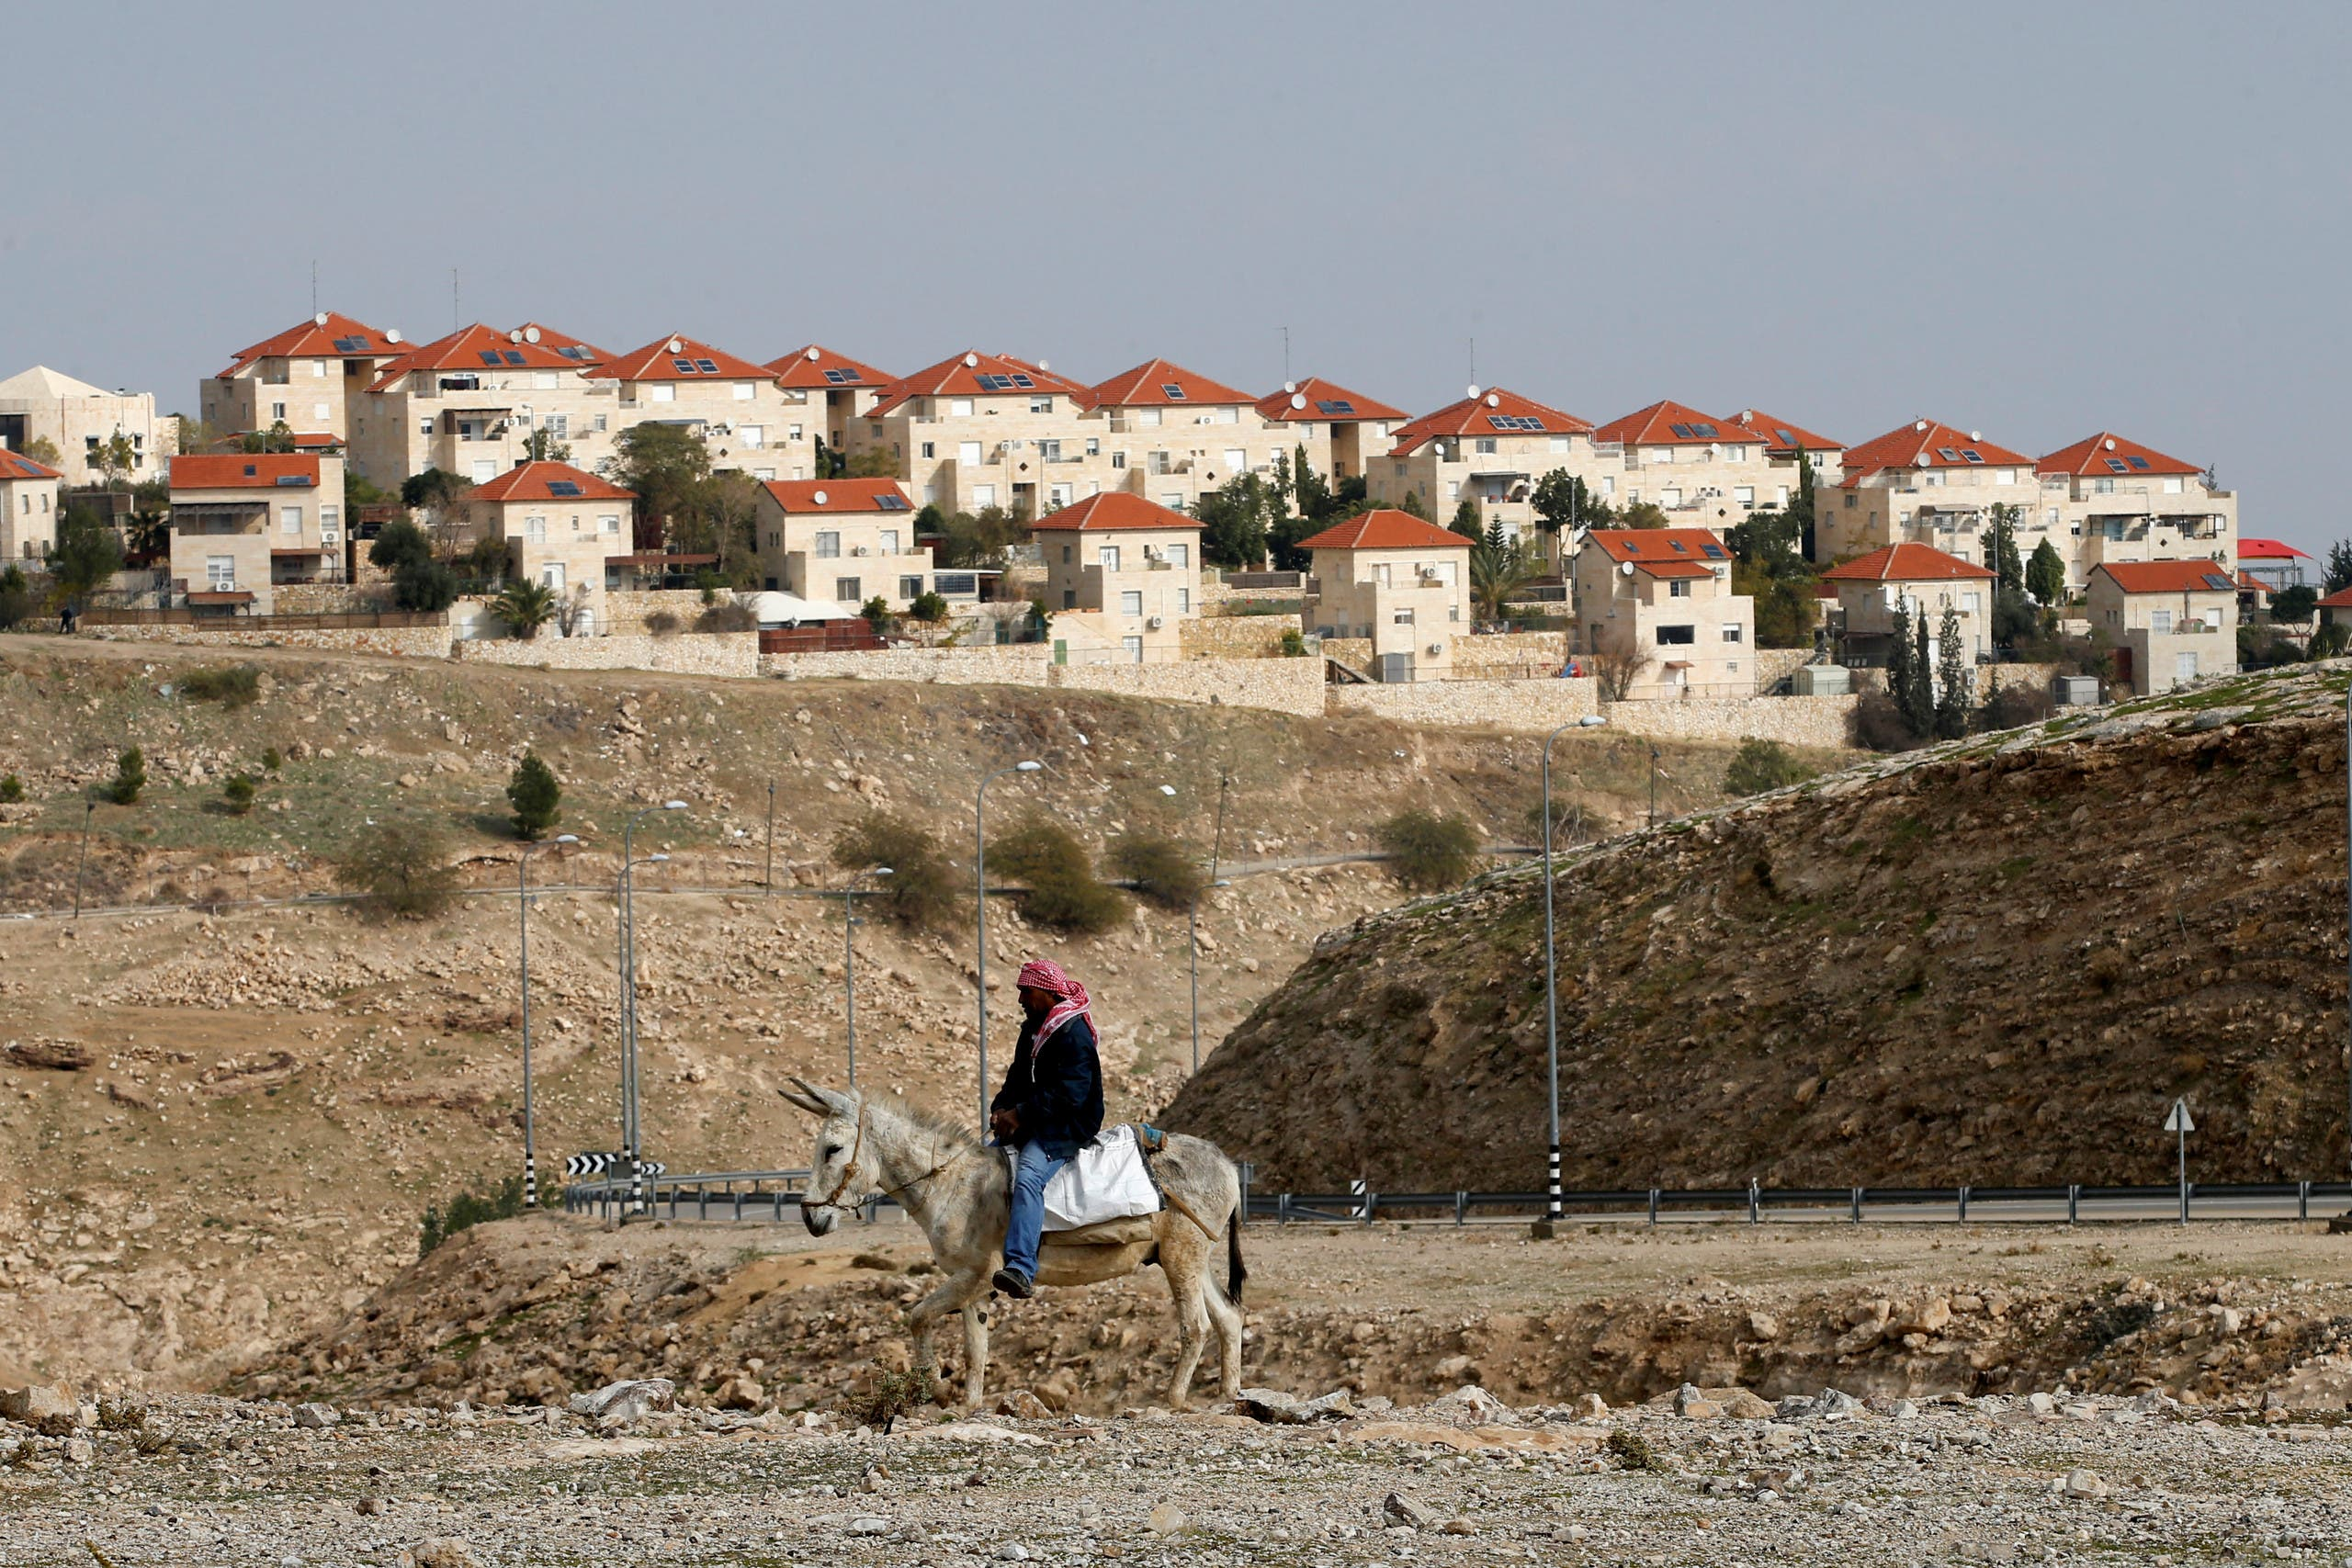 A Palestinian man rides a donkey near the Israeli settlement of Maale Edumim, in the occupied West Bank, December 28, 2016. (Reuters)